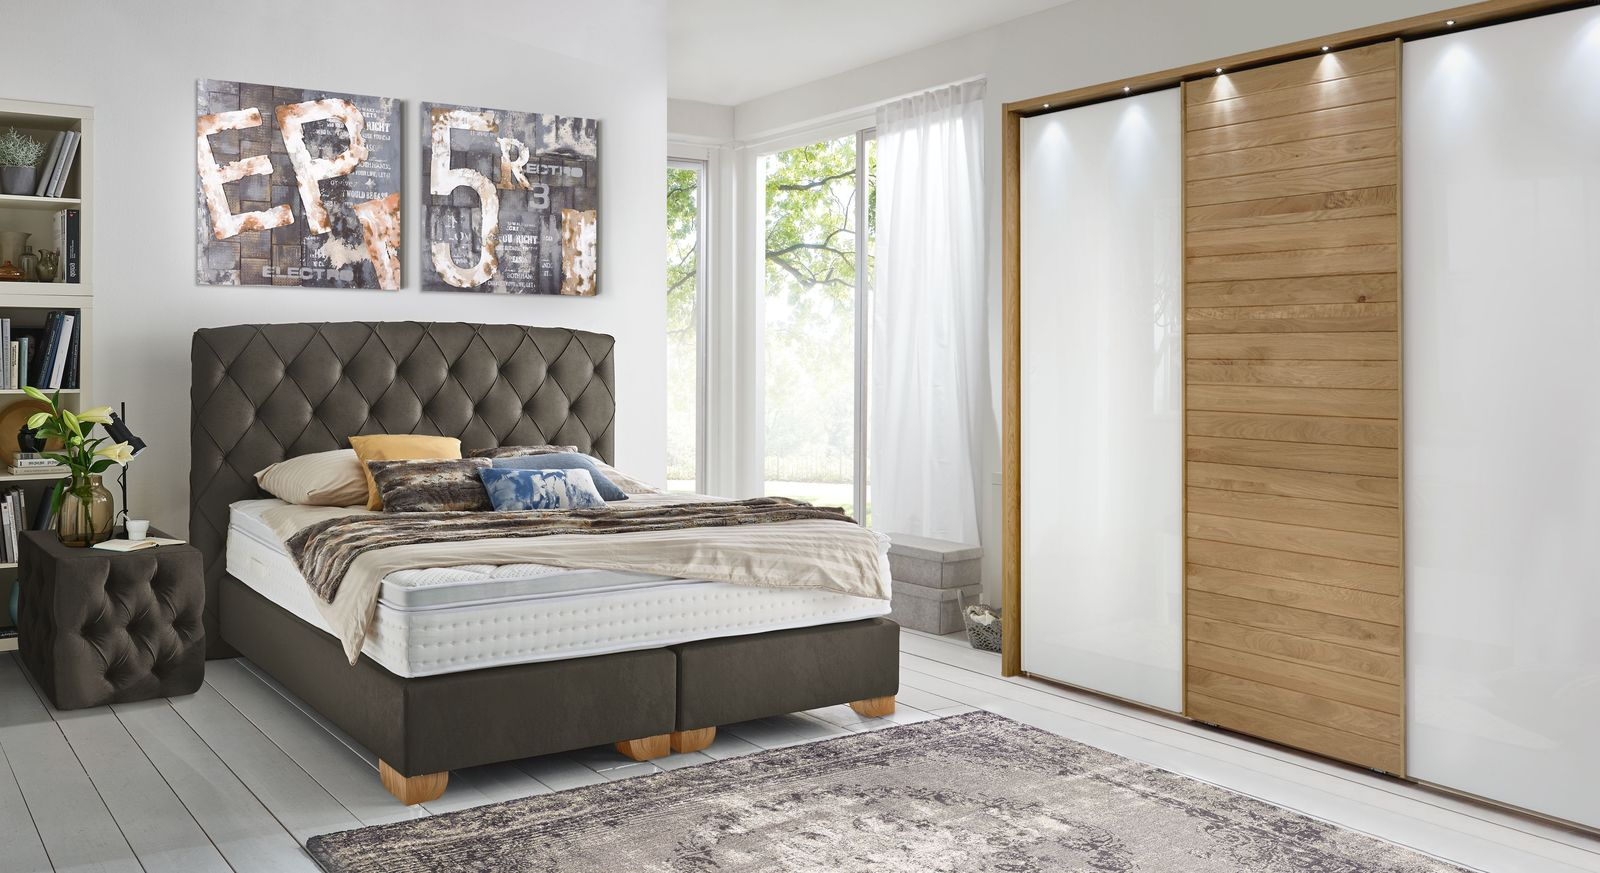 chesterfield schlafzimmer komplett mit boxspringbett sunnyvale. Black Bedroom Furniture Sets. Home Design Ideas